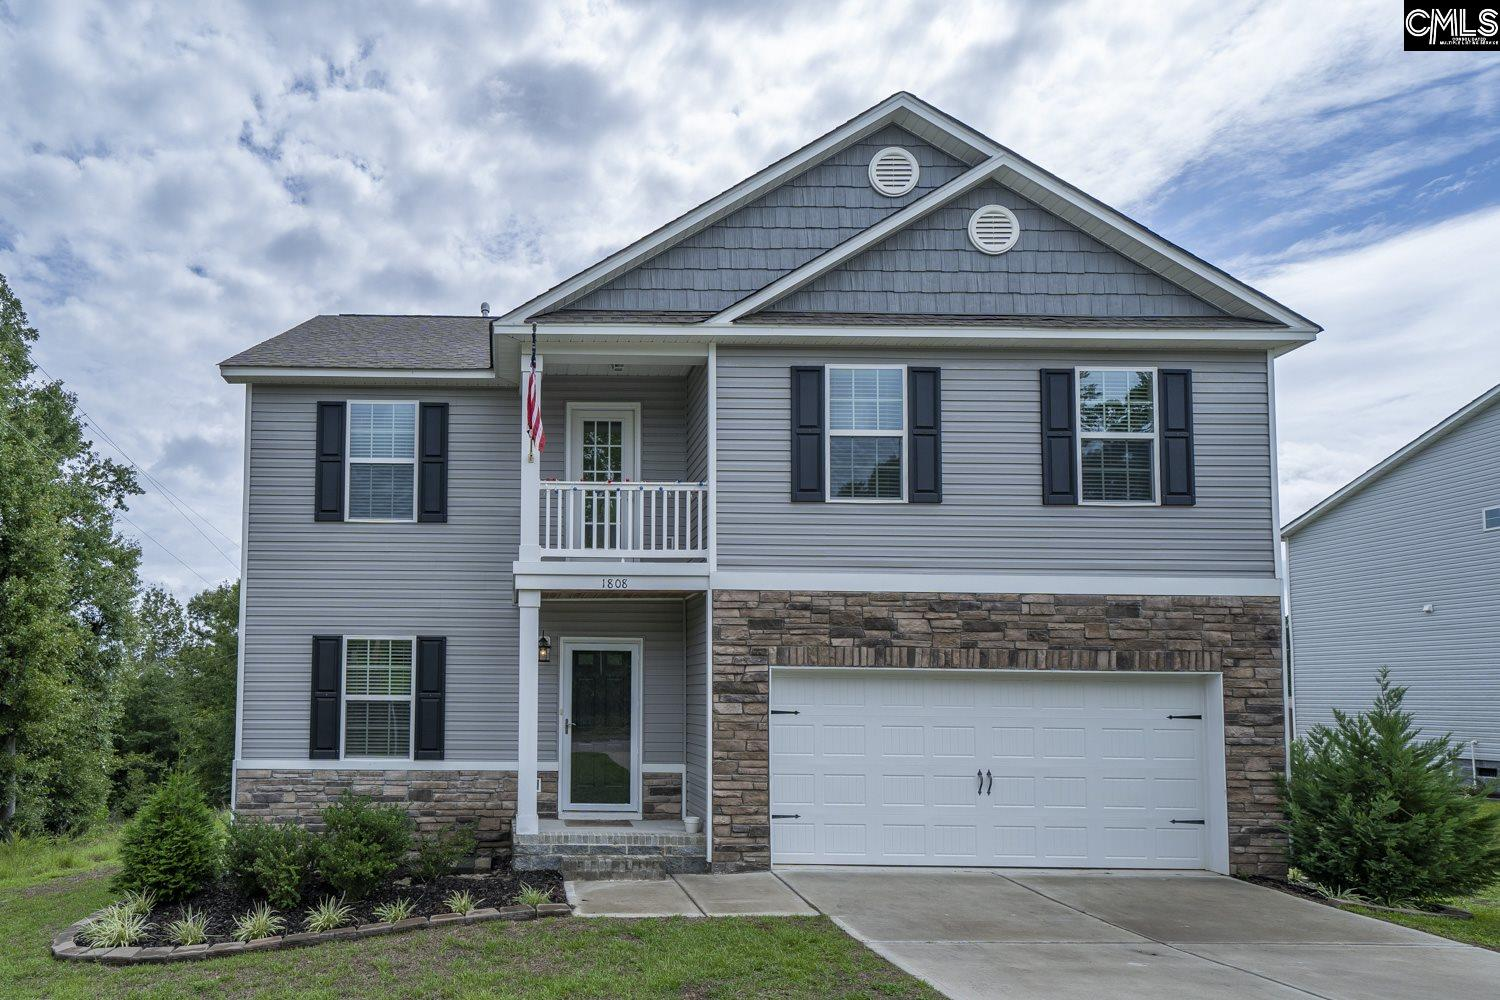 1808 Crystal West Columbia, SC 29170